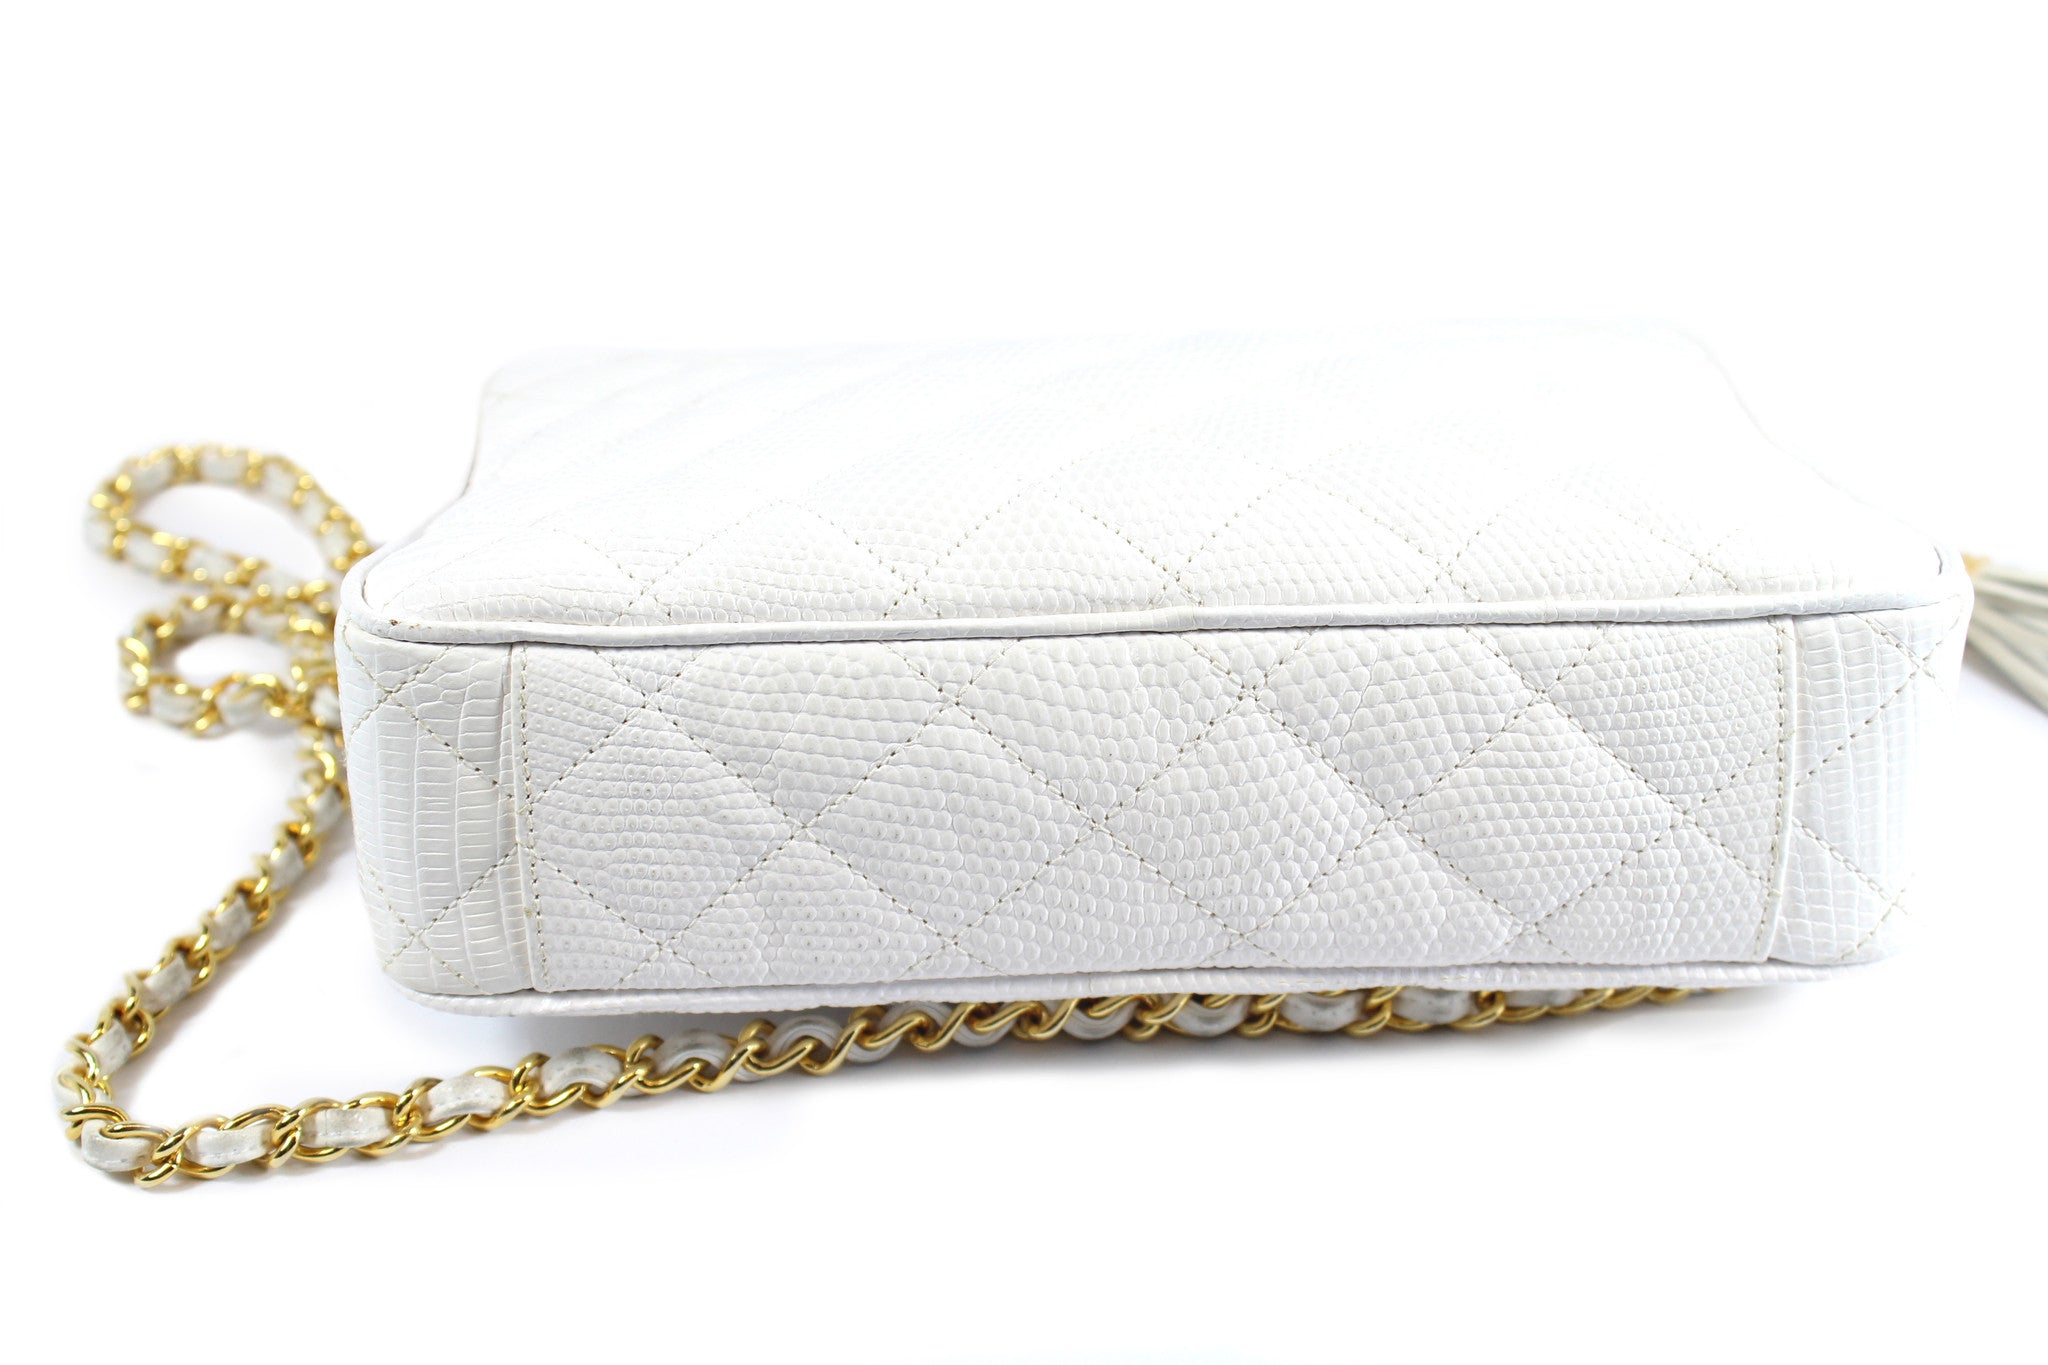 Chanel Vintage White Lizard Leather Tassel Bag - Encore Consignment - 8